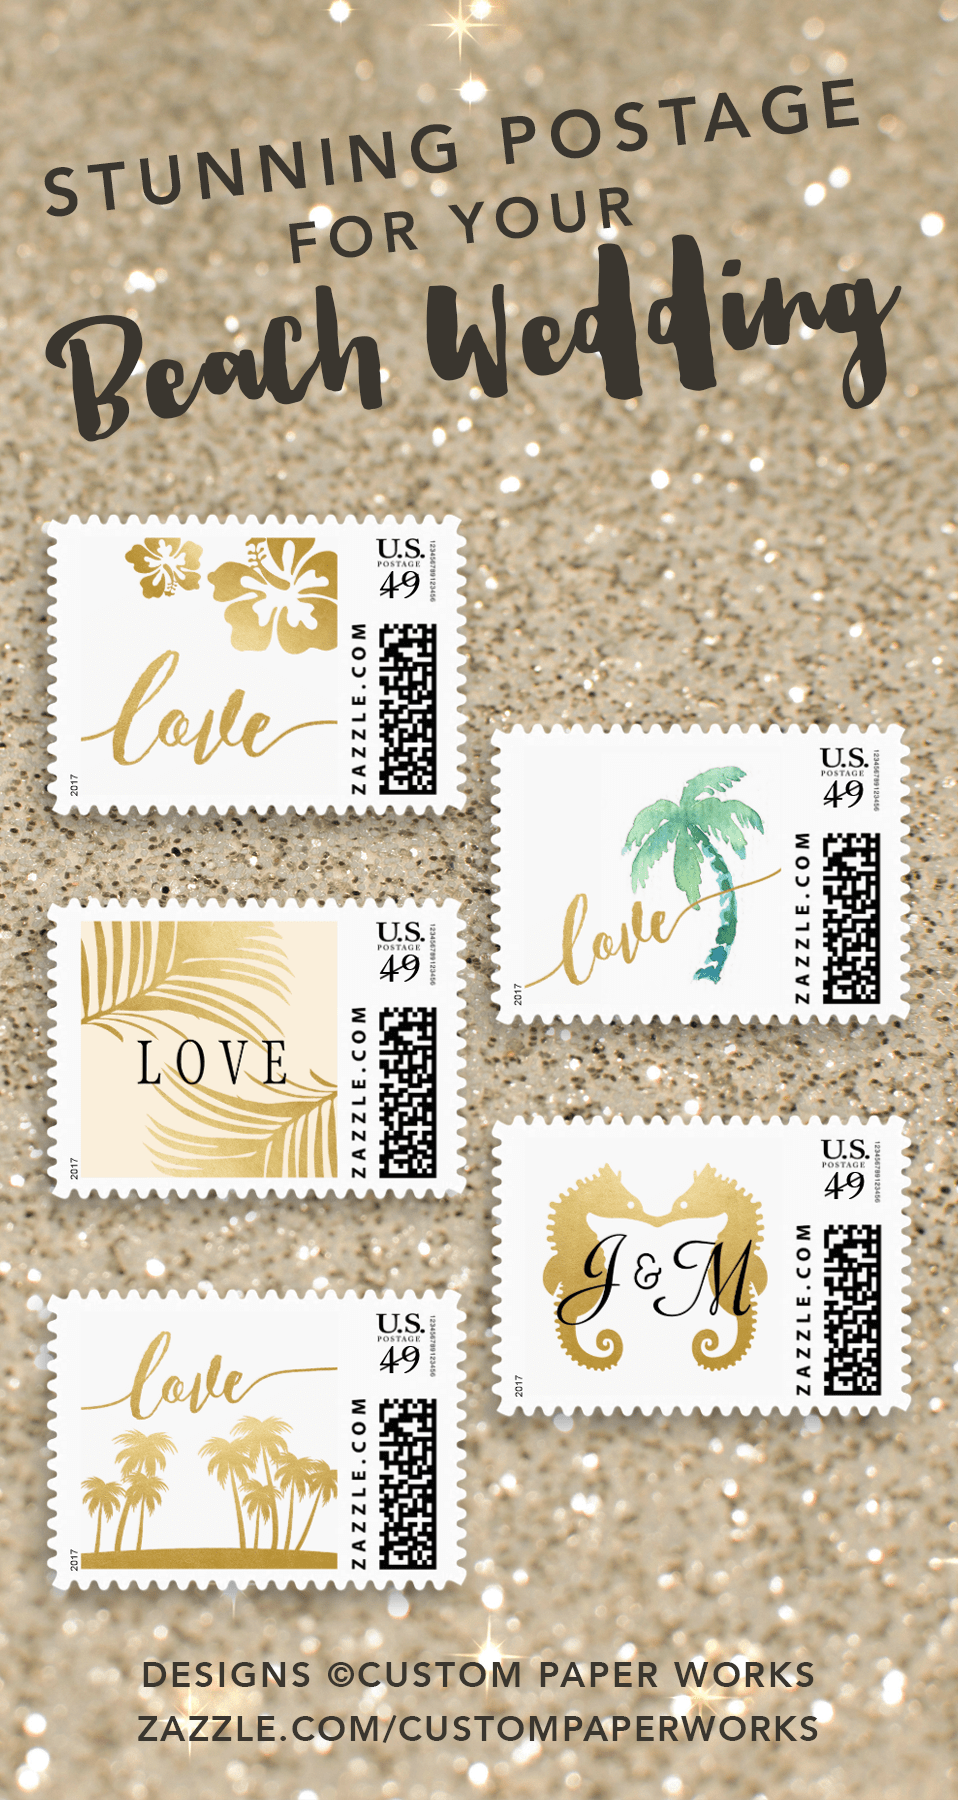 postage stamps for wedding invitations custom destination wedding amp travel theme postage stamps 6730